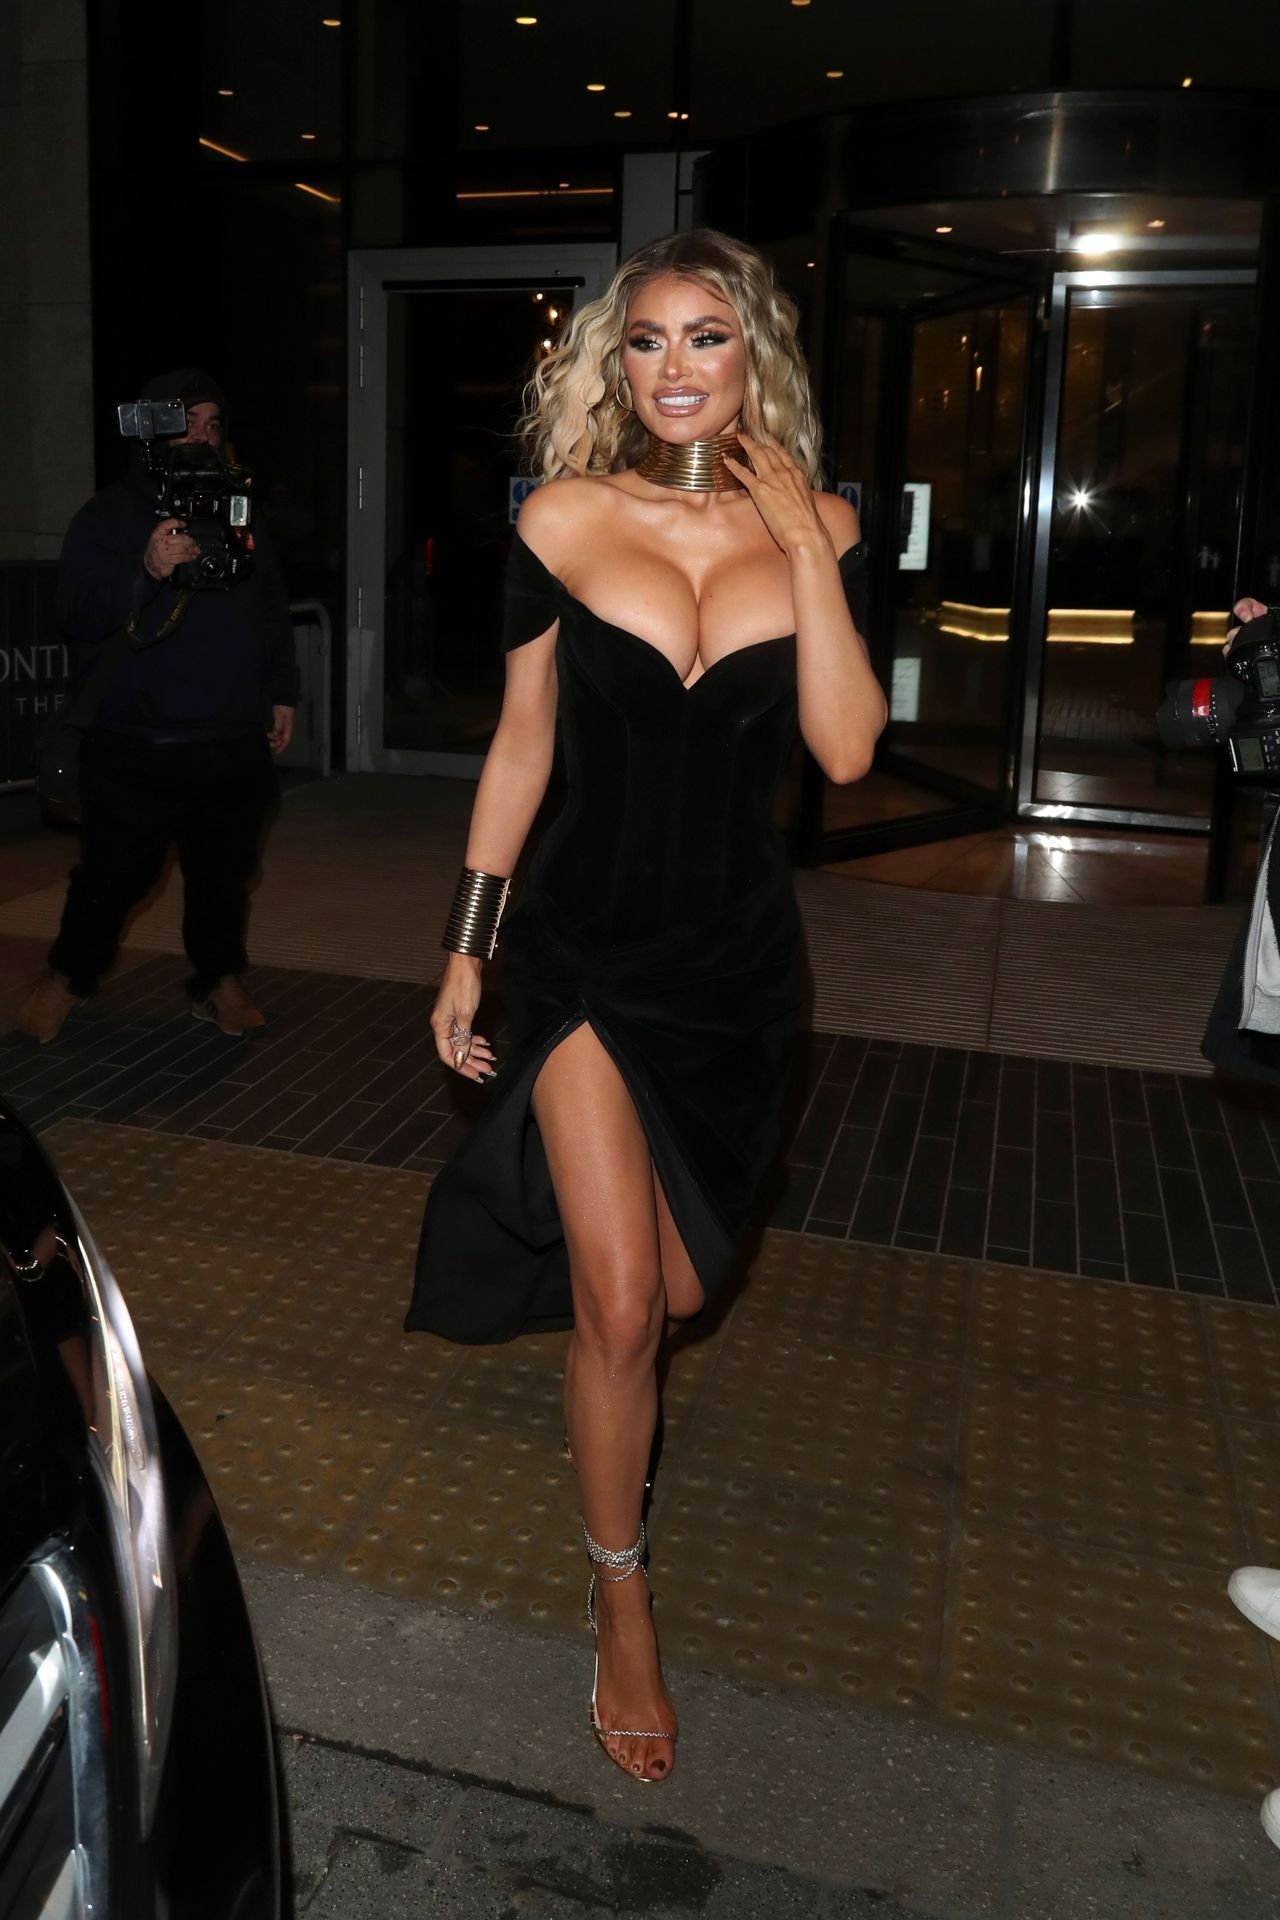 Chloe Sims Shows Off Her Boobs At The Nta Afterparty In London 0001